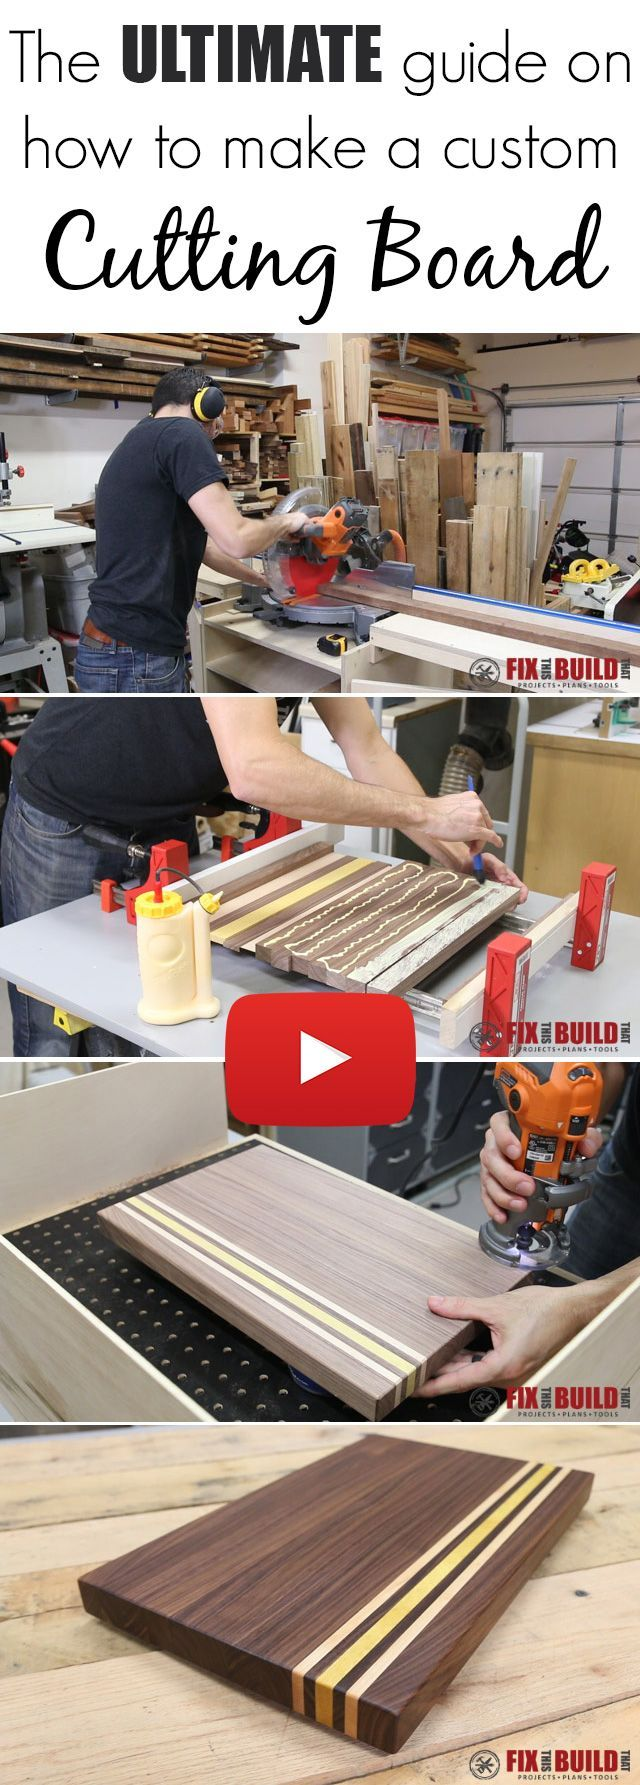 Make Your Own (Simple) Wooden Cutting Board